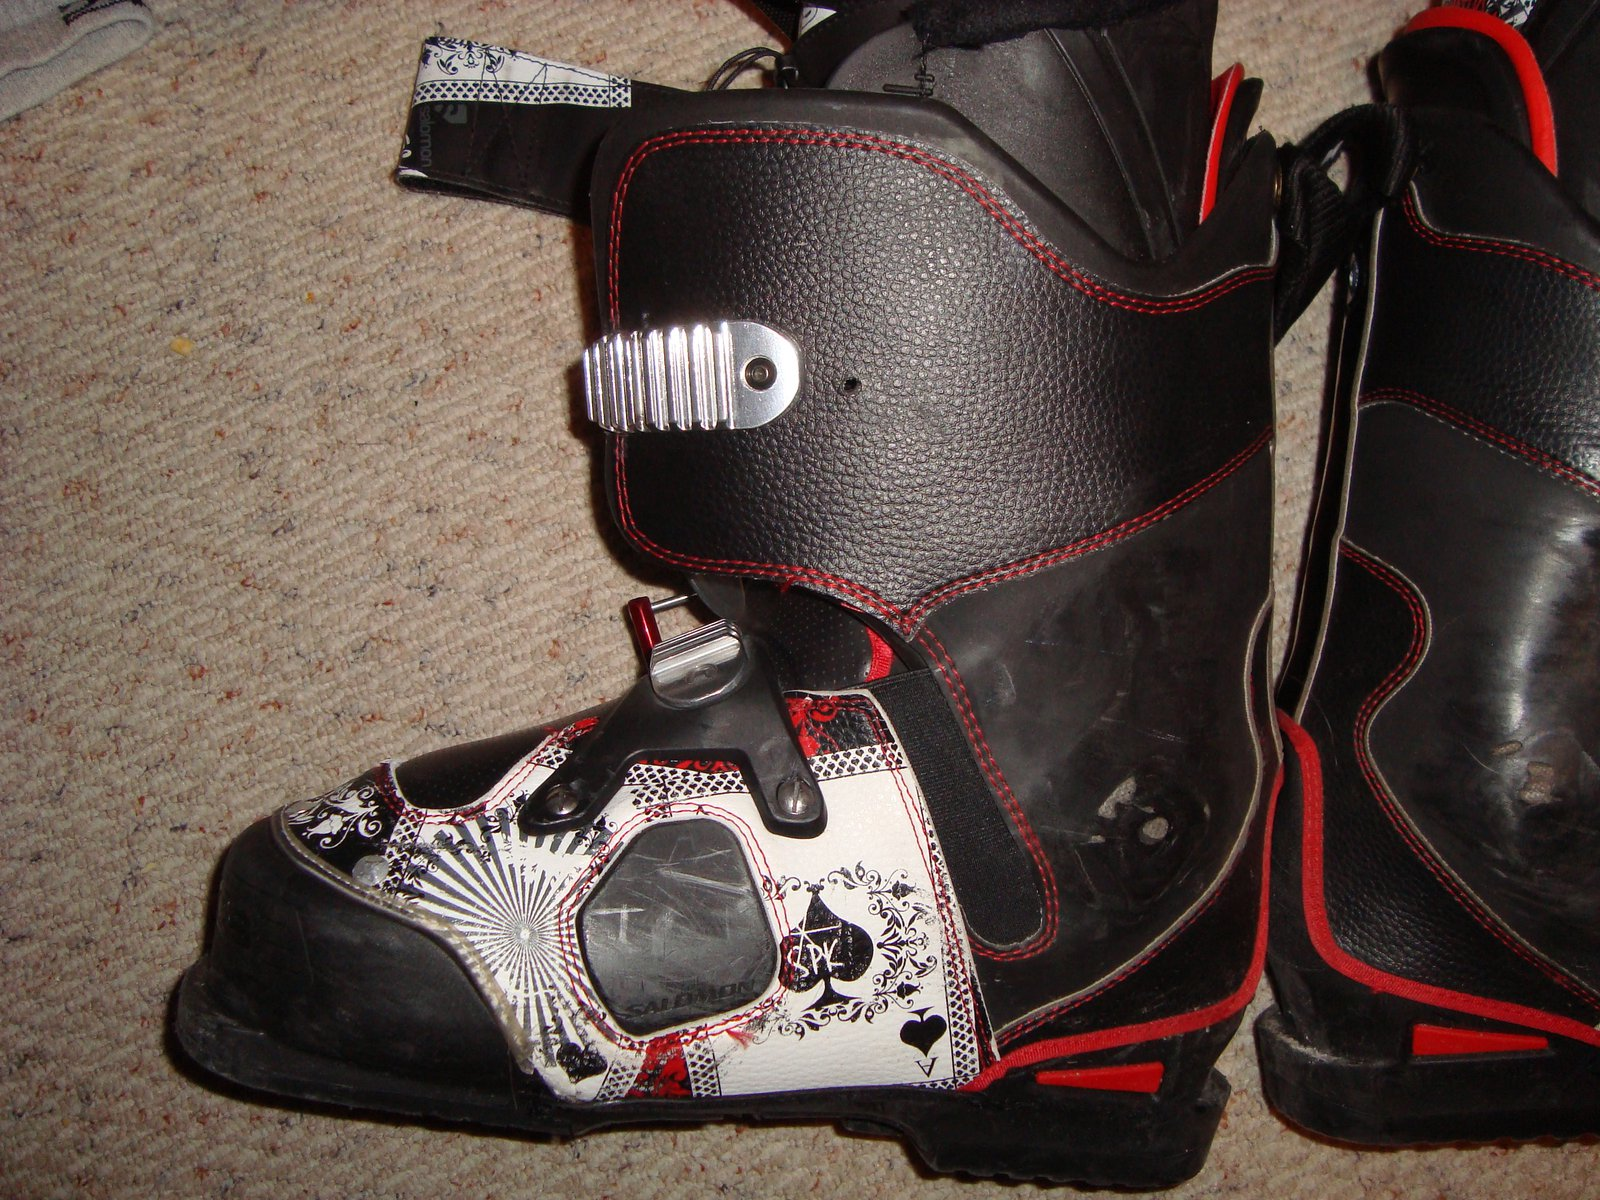 Front of boot